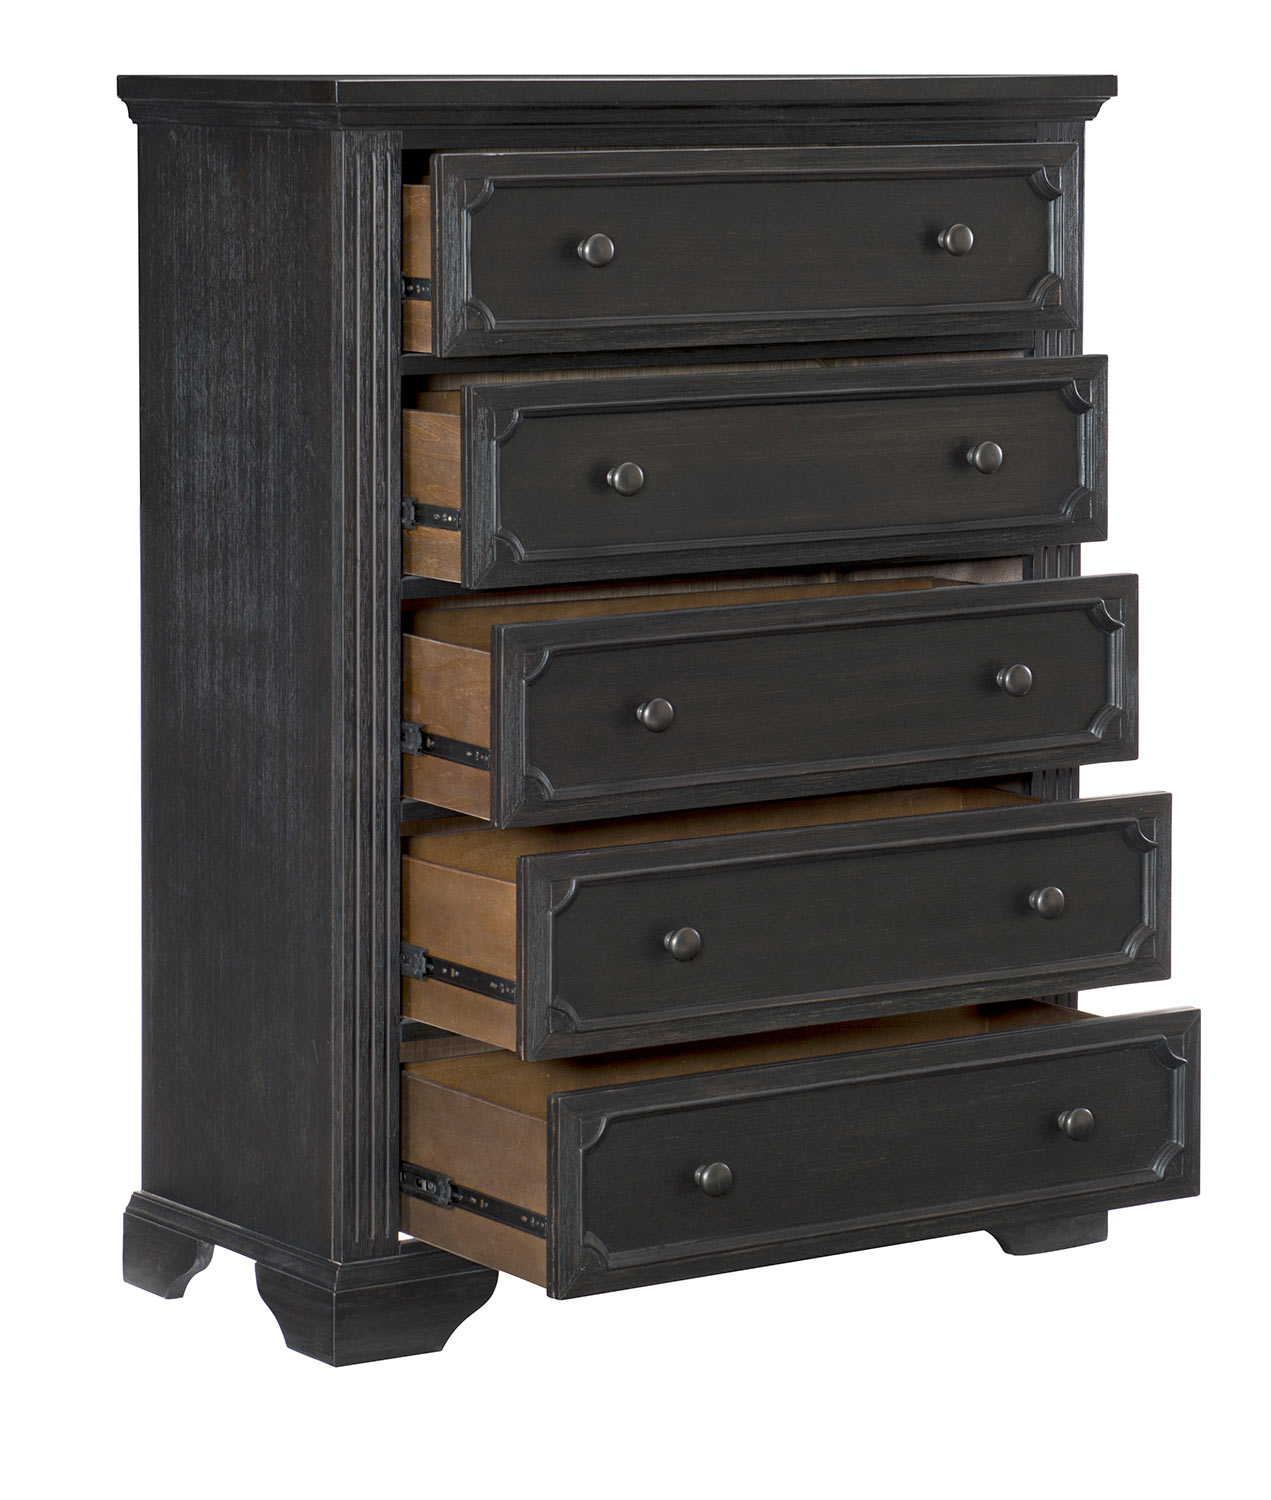 Homelegance Bolingbrook Chest - Charcoal